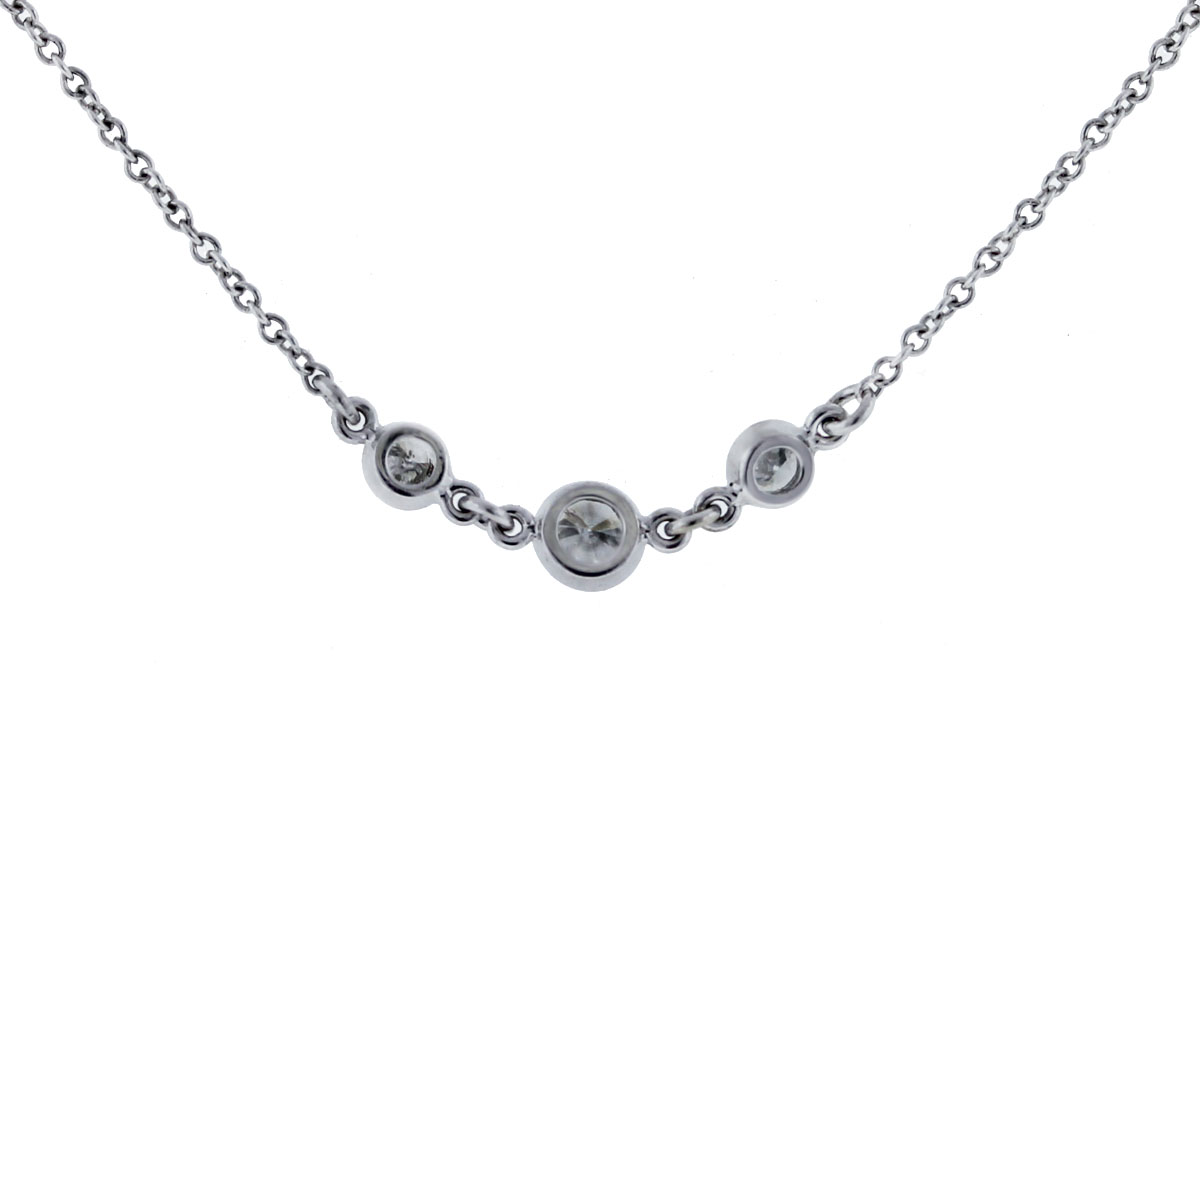 14k White Gold Diamonds By The Yard Necklace close up